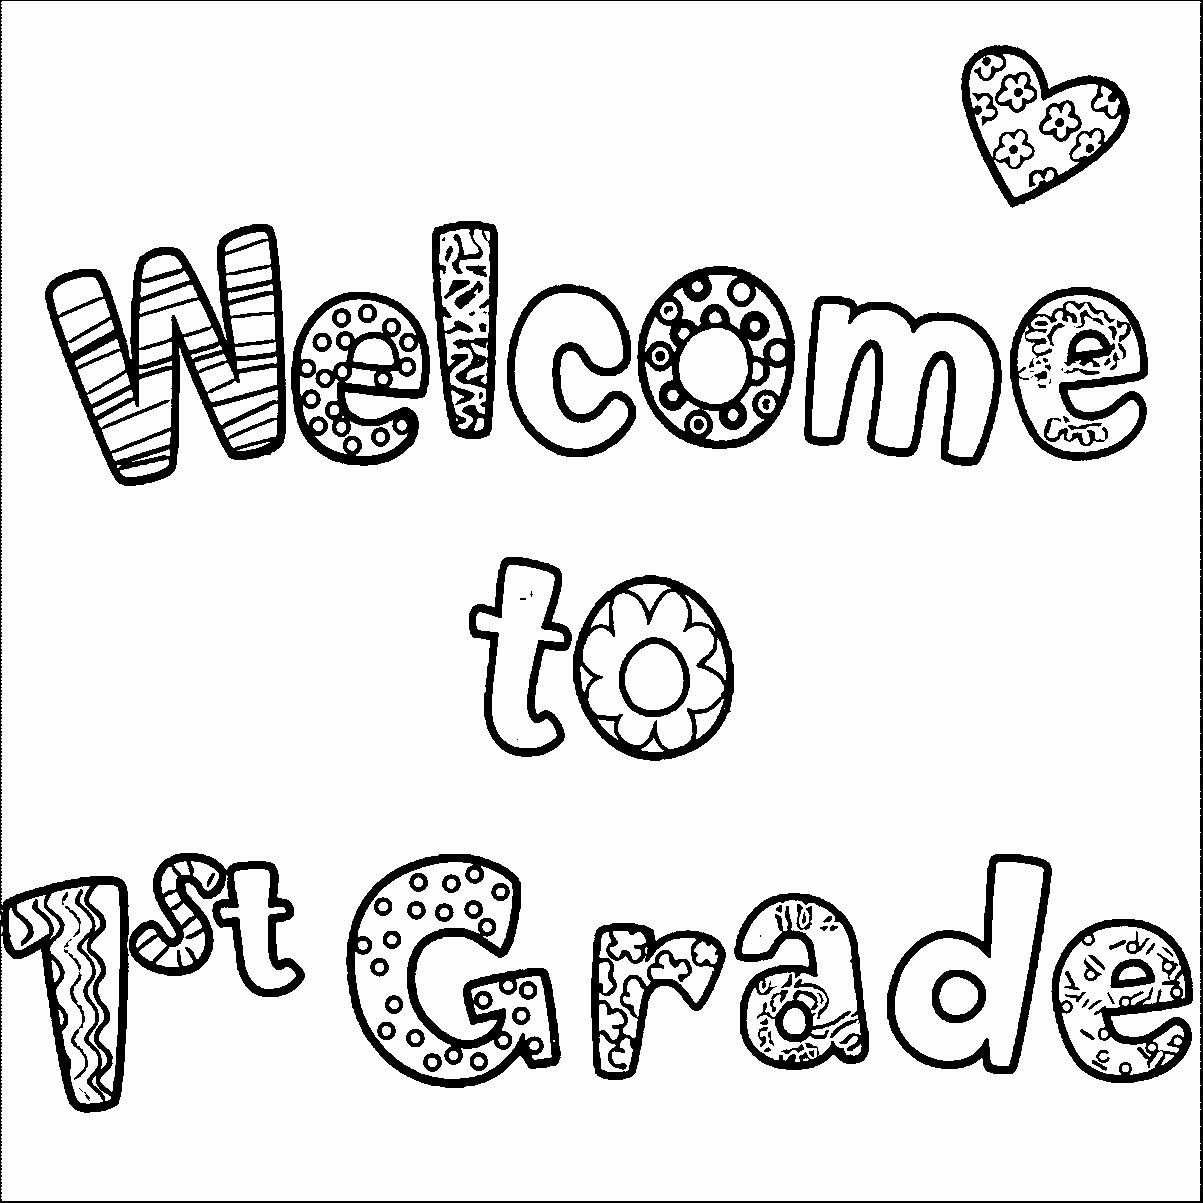 Welcome To Kindergarten Coloring Sheet Elegant Coloring Pages 35 Fantastic First Day Kinde Kindergarten Coloring Pages Color Worksheets Welcome To Kindergarten